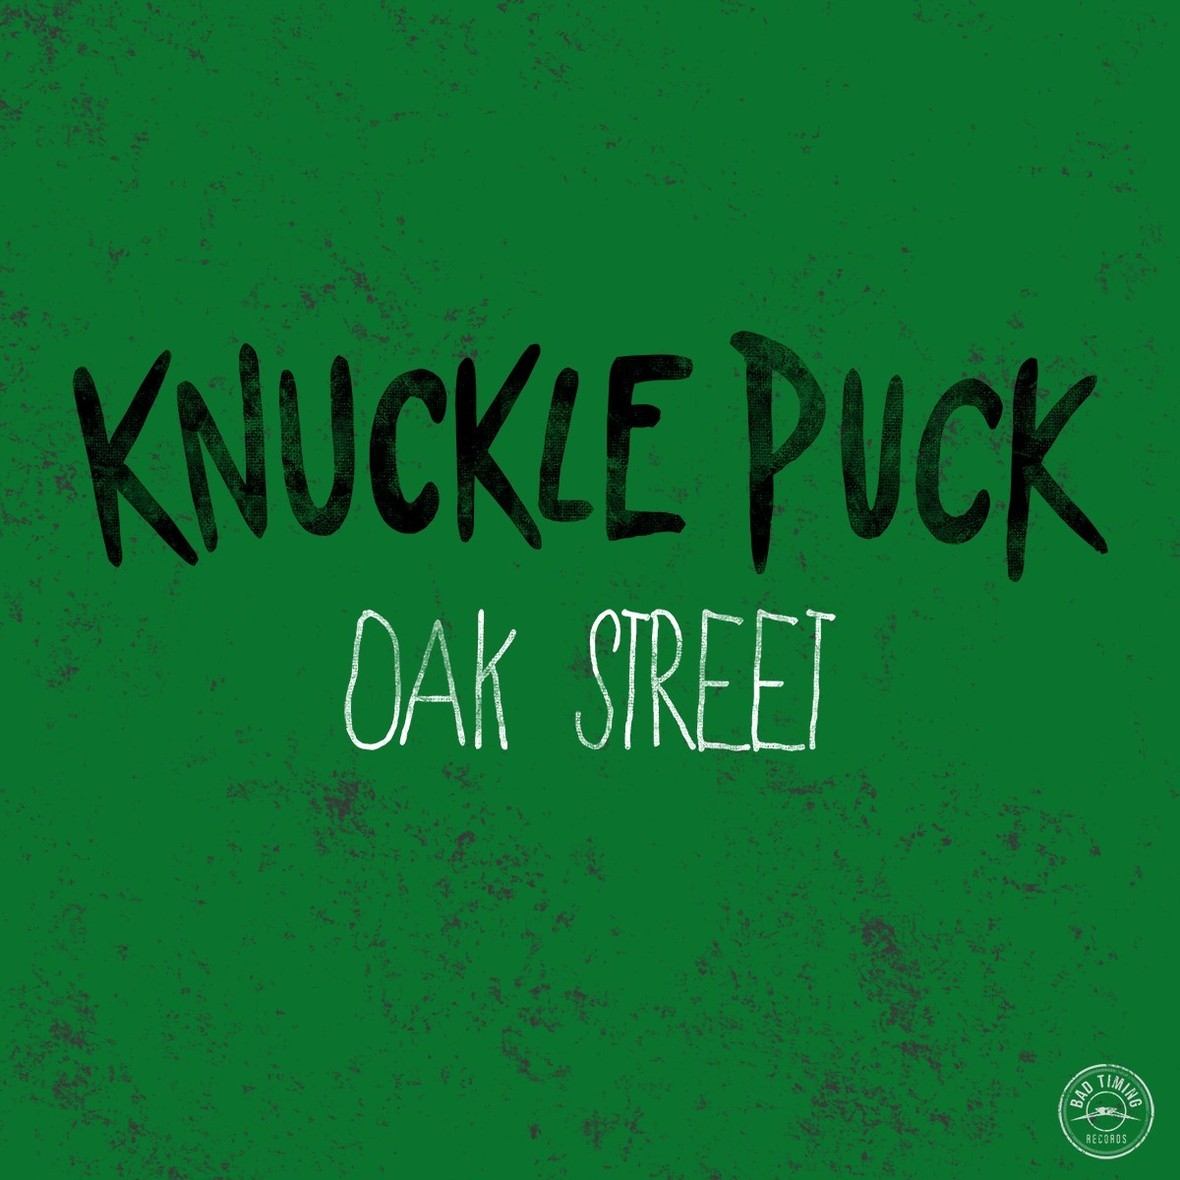 knuckle puck 7 inch flex disc